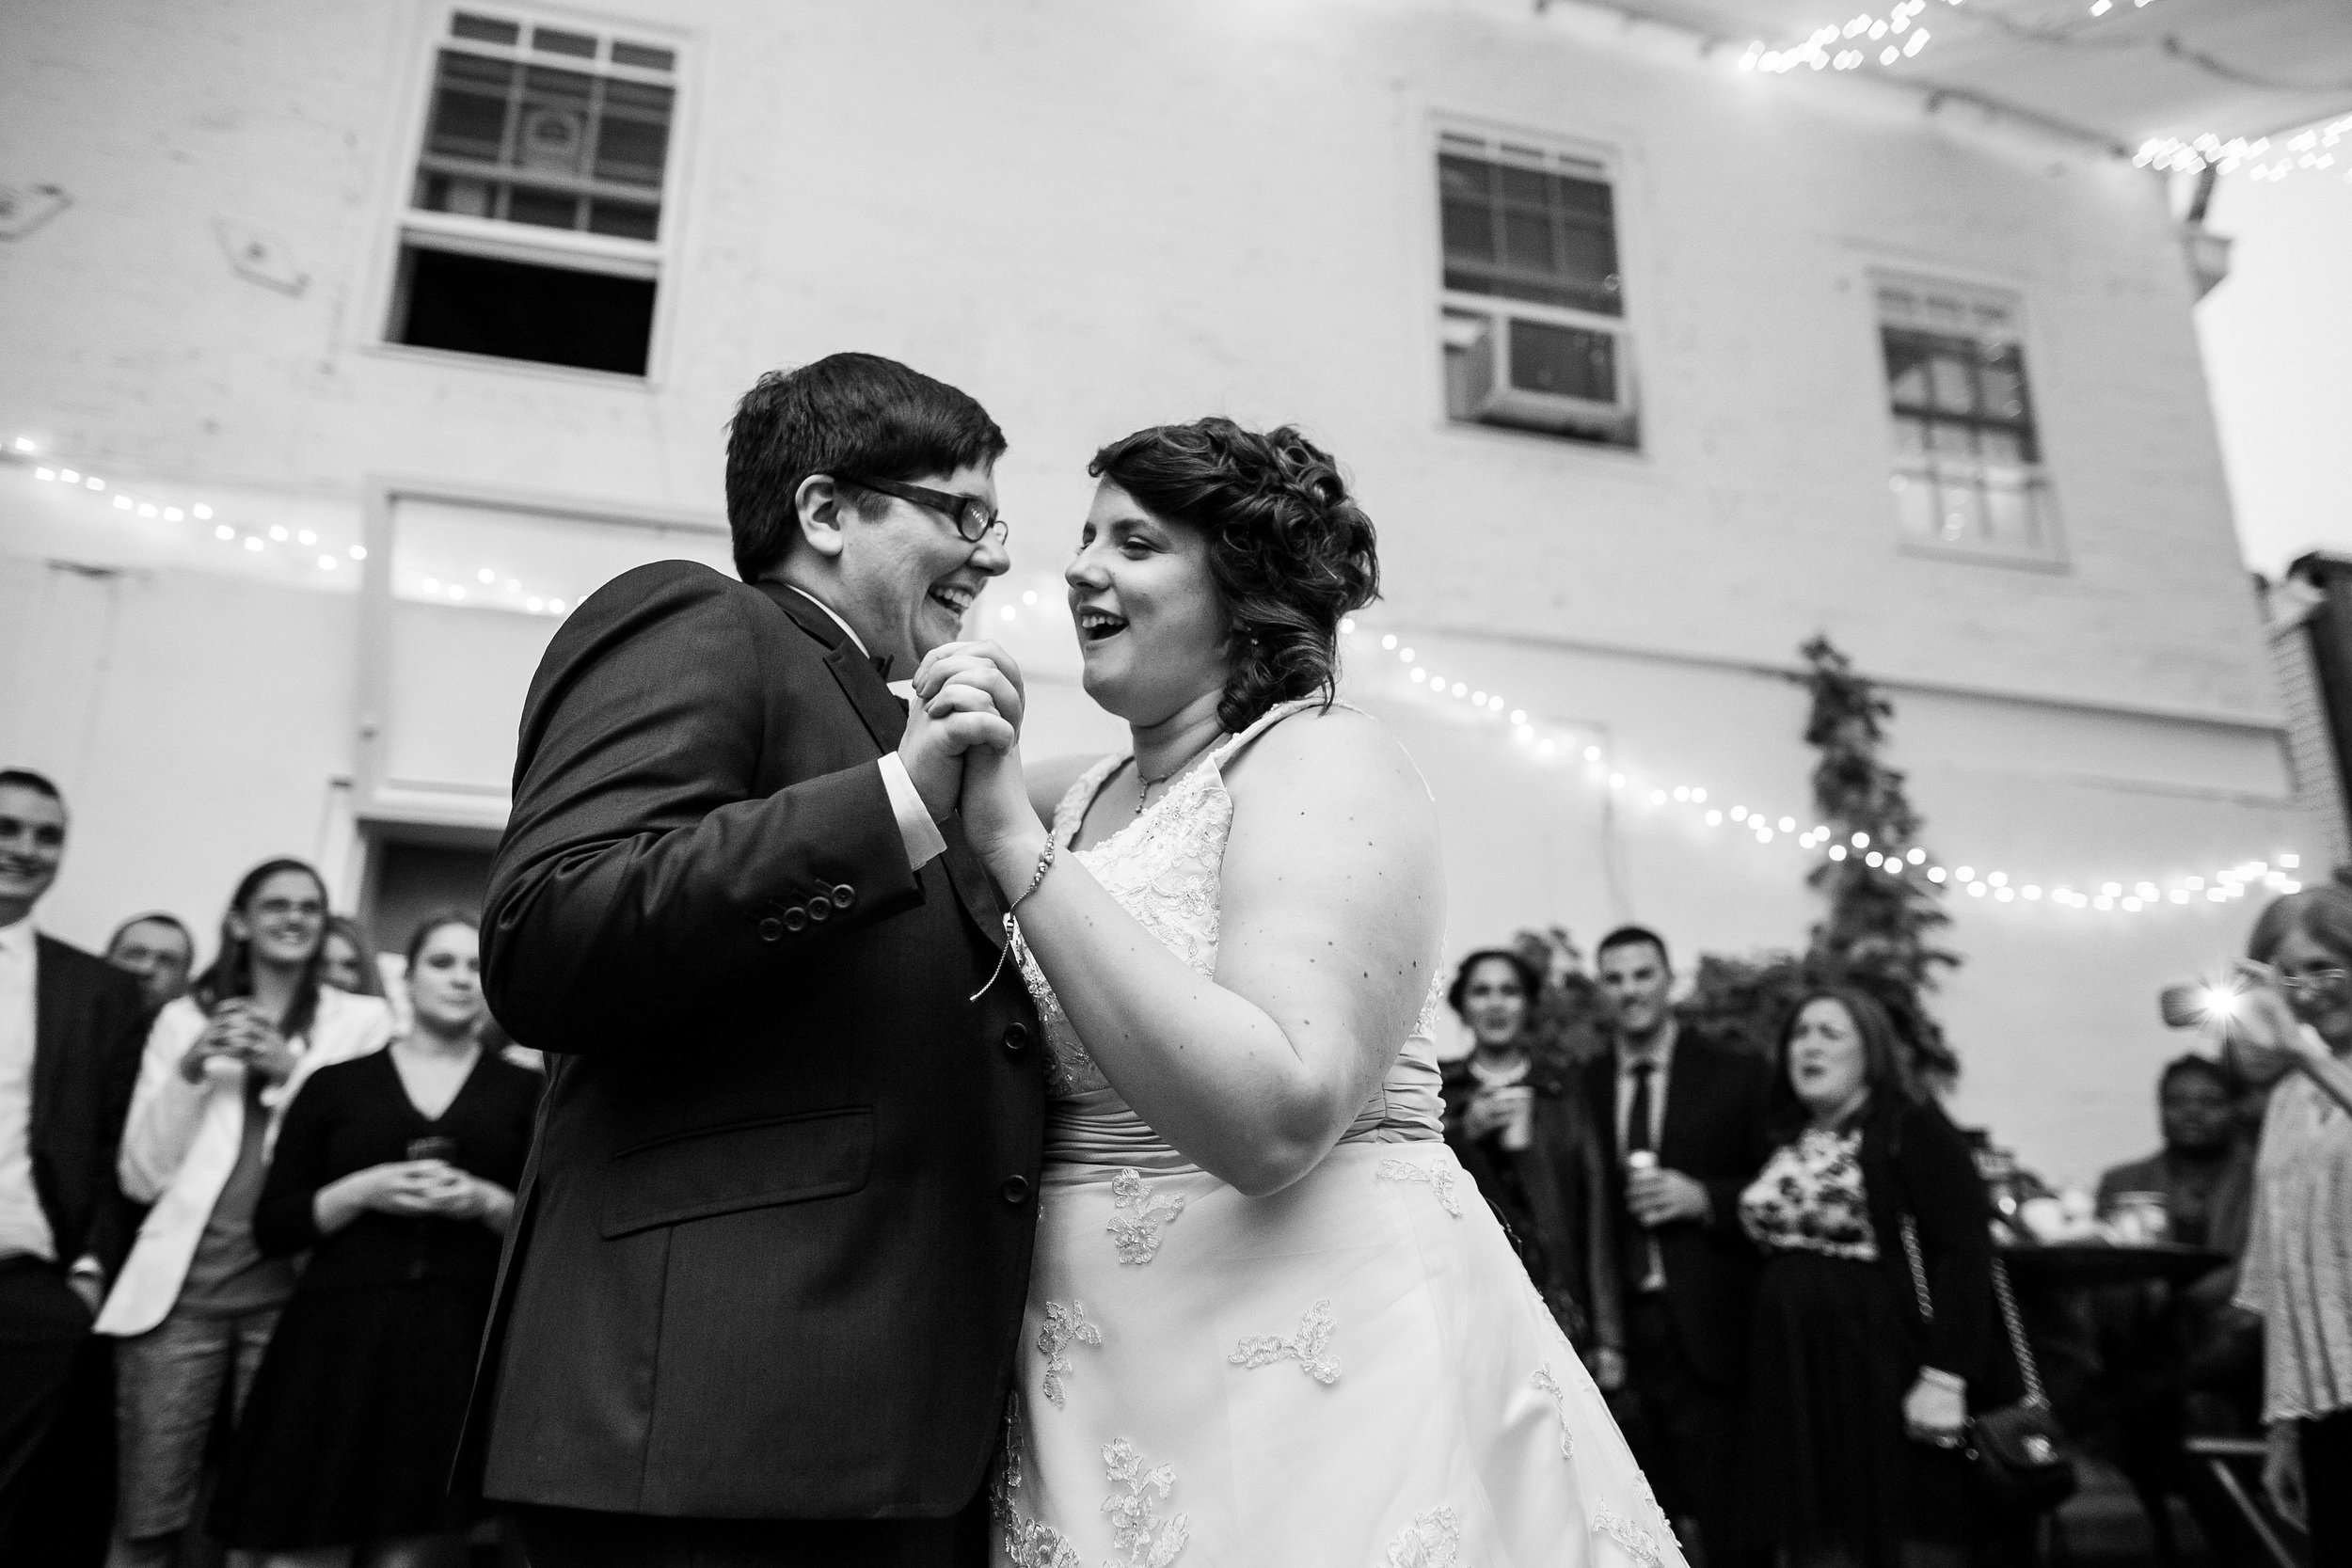 Rita and Angela had the sweetest wedding at The Maas Building despite rain messing up all of our plans. Their love for each other couldn't be dampened by a little rain